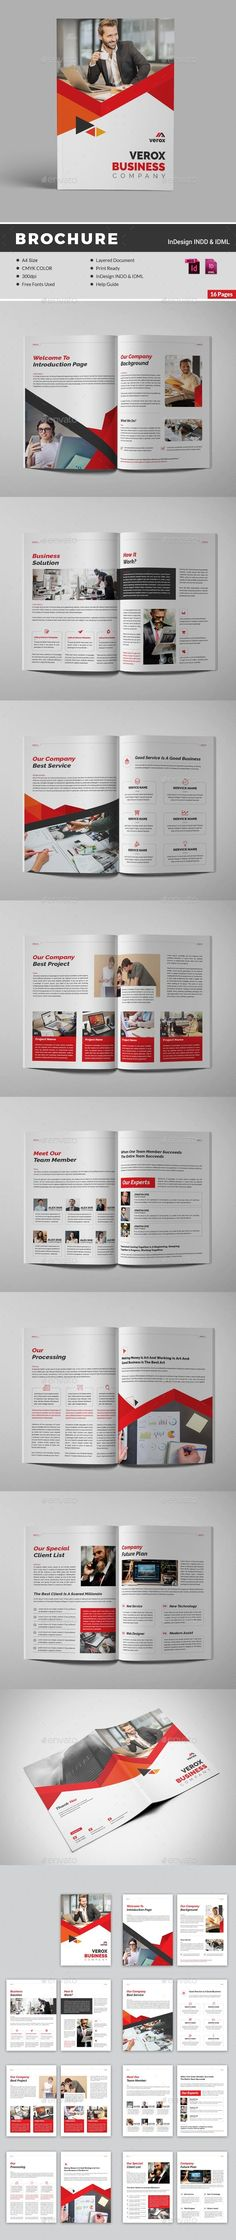 Buy Proposal by Desertwave on GraphicRiver. This Proposal Template Contains 20 Pages. You can use this Proposal for your business purpose or others sector. Travel Brochure Template, Bi Fold Brochure, Brochure Cover, Business Brochure, Brochure Design, Corporate Brochure, Business News, Stationery Design, Graphic Design Templates